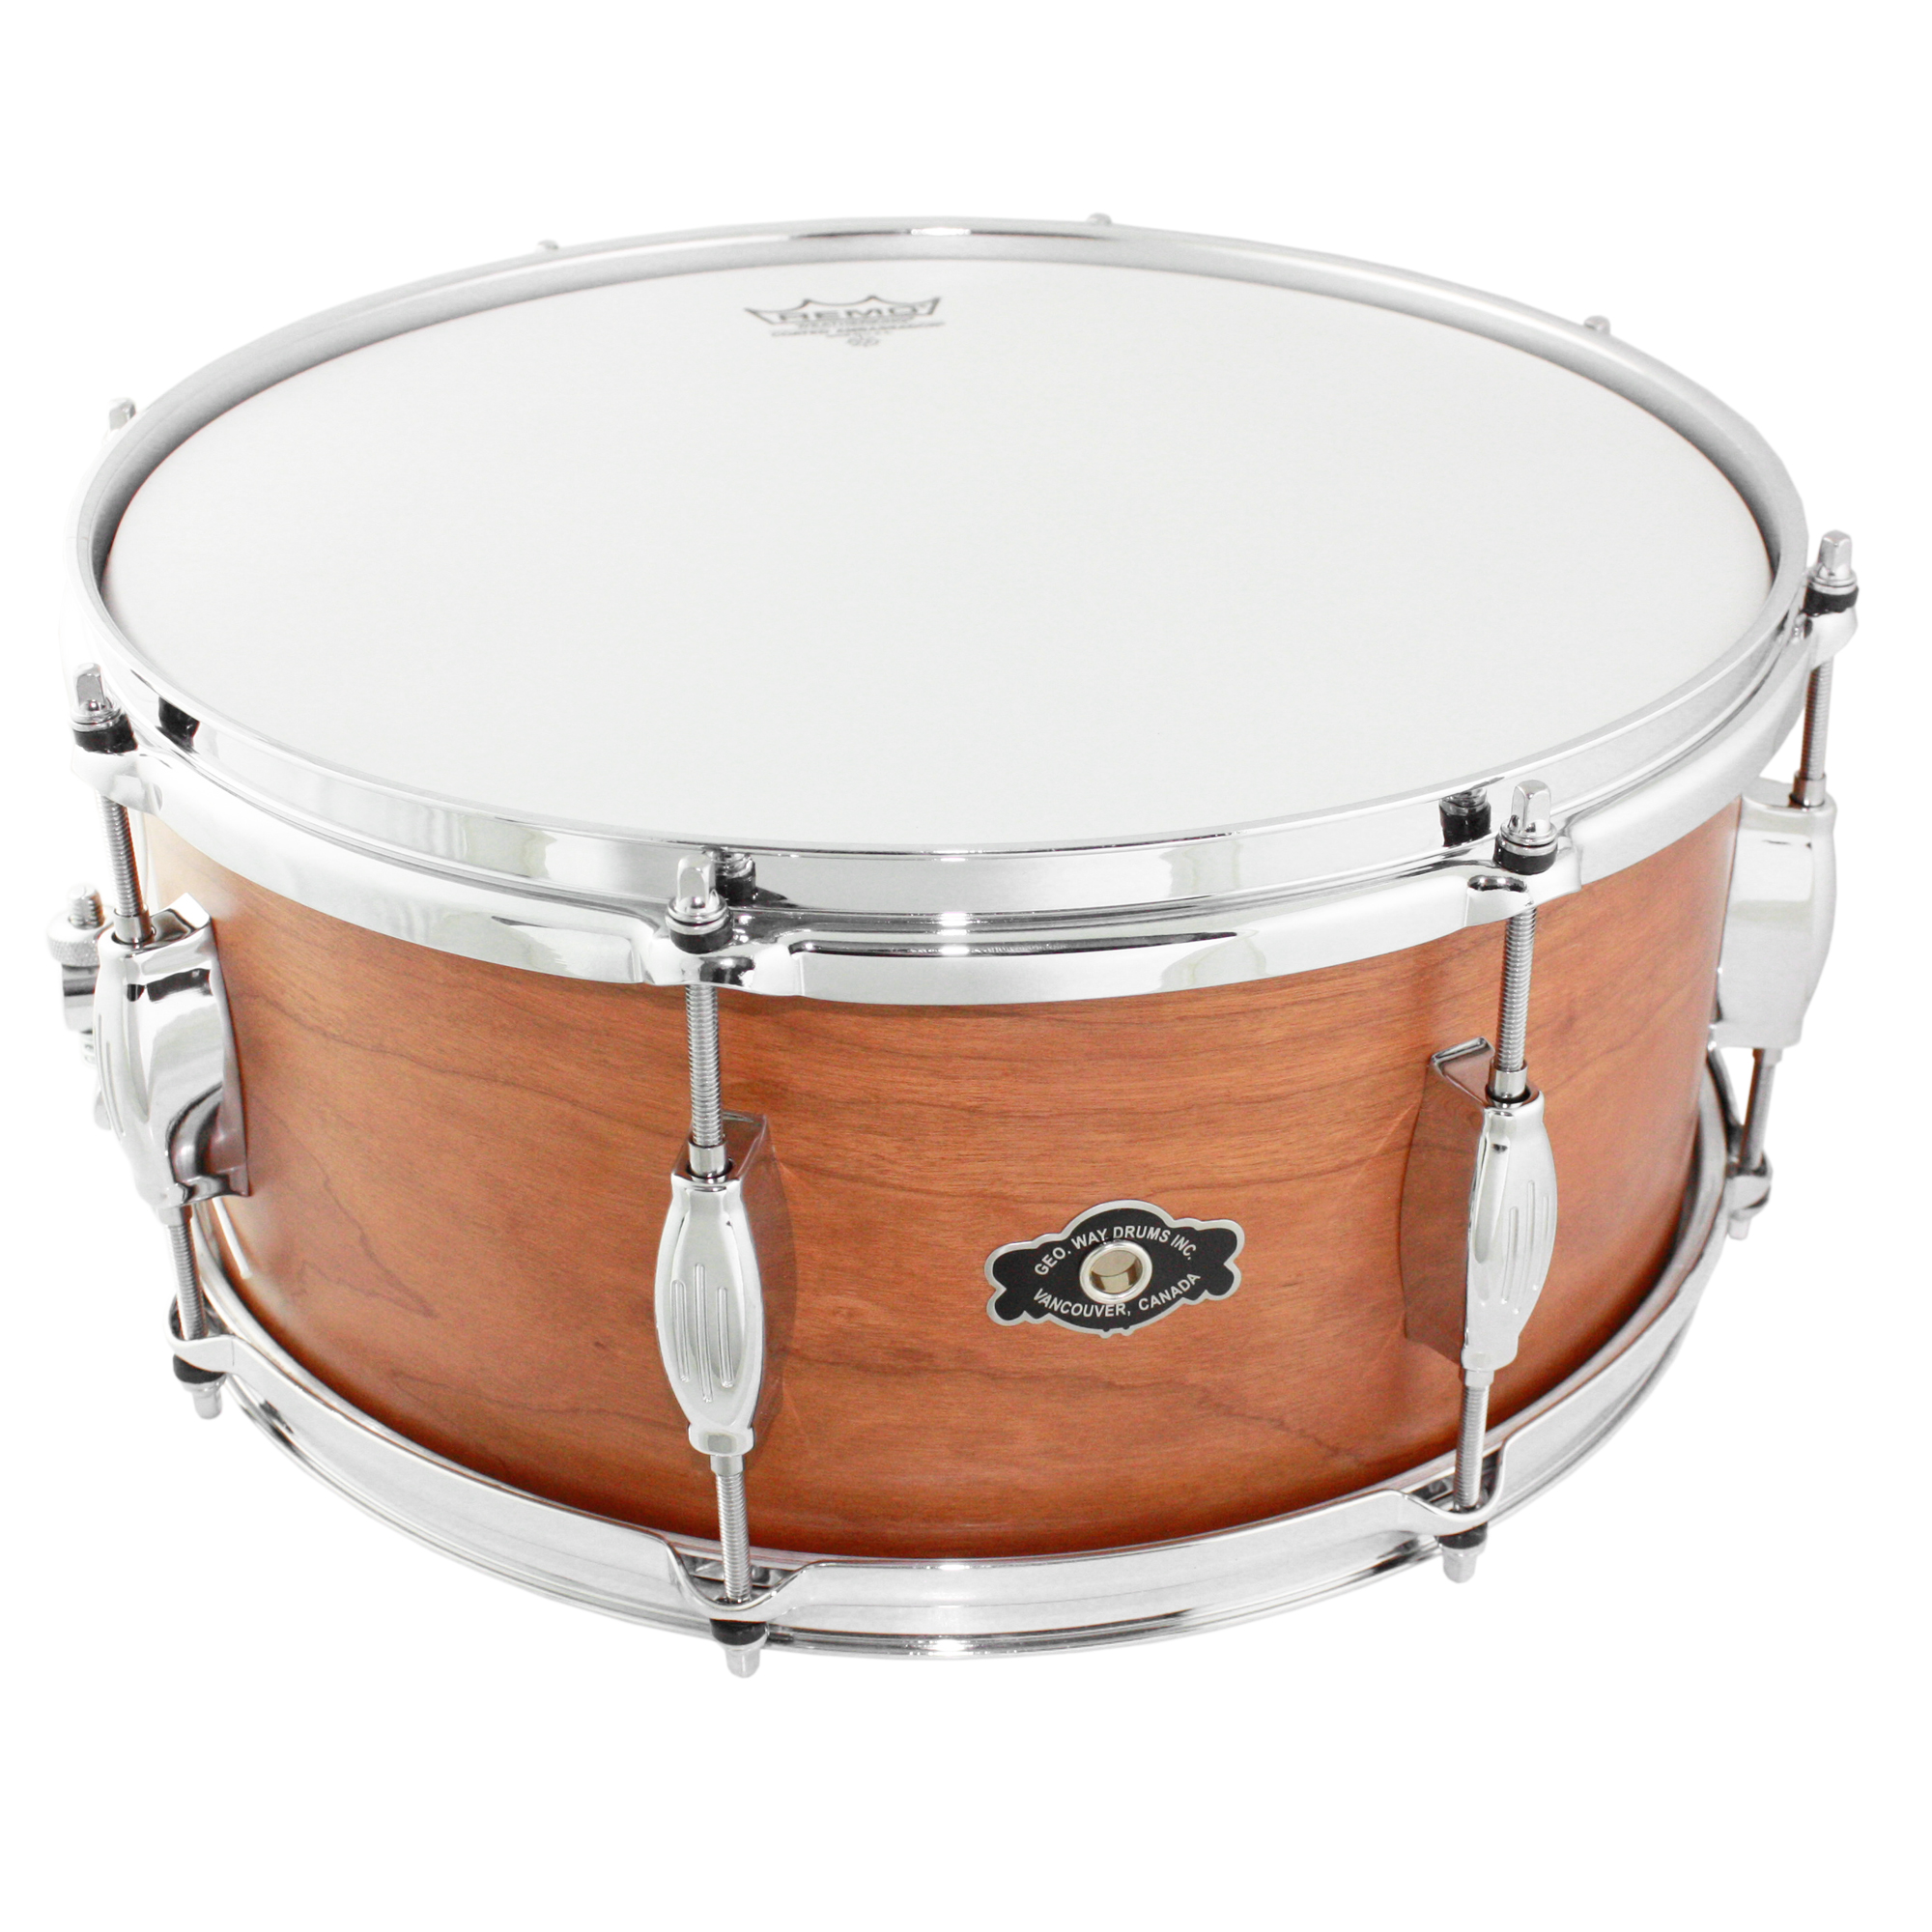 "George Way 6.5"" x 14"" Tradition Cherry Natural Oil Snare Drum"